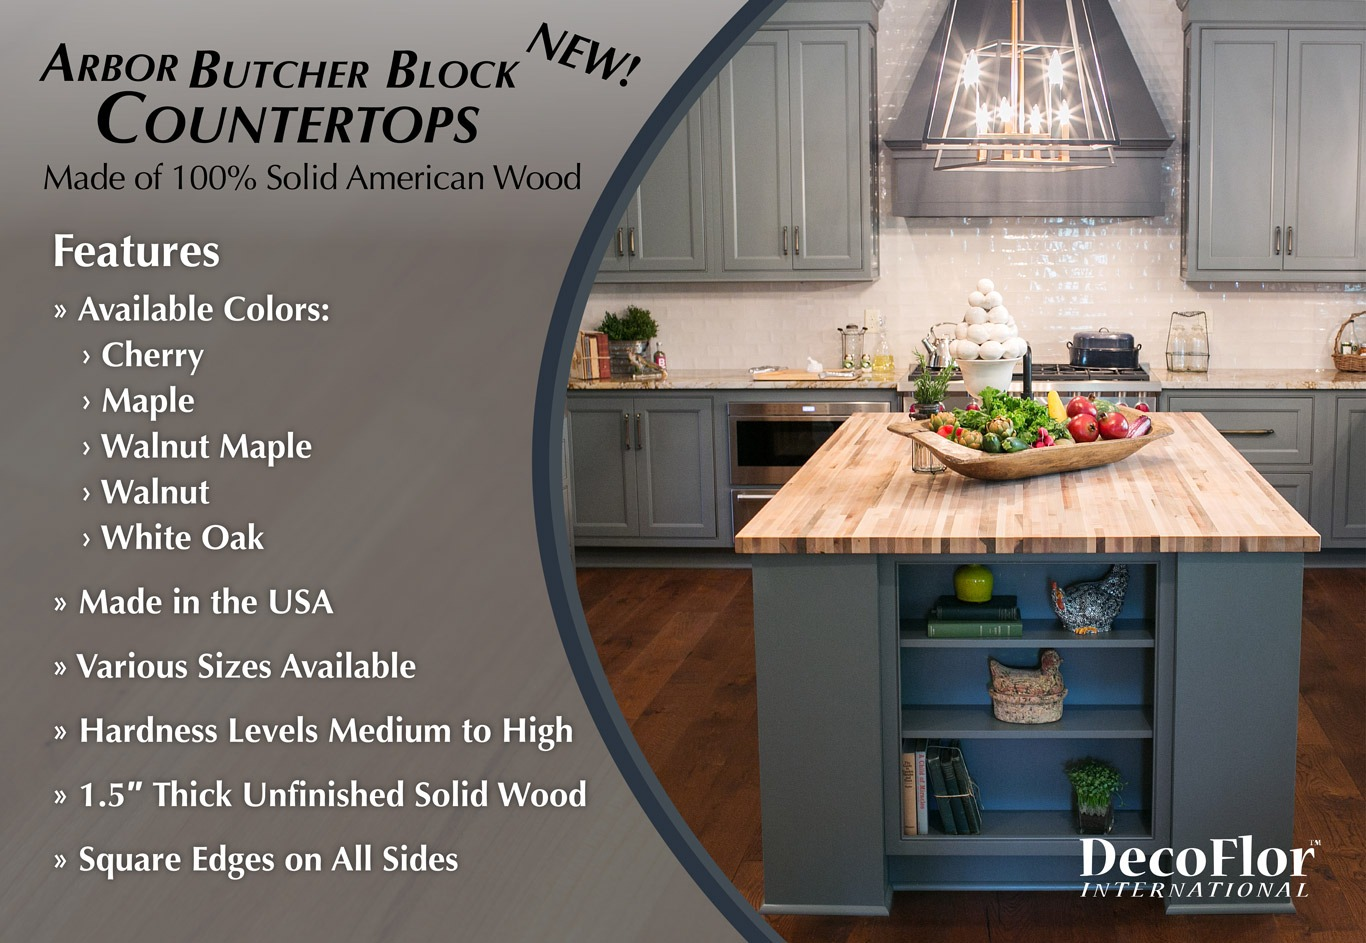 Arbor Butcher Block Countertops